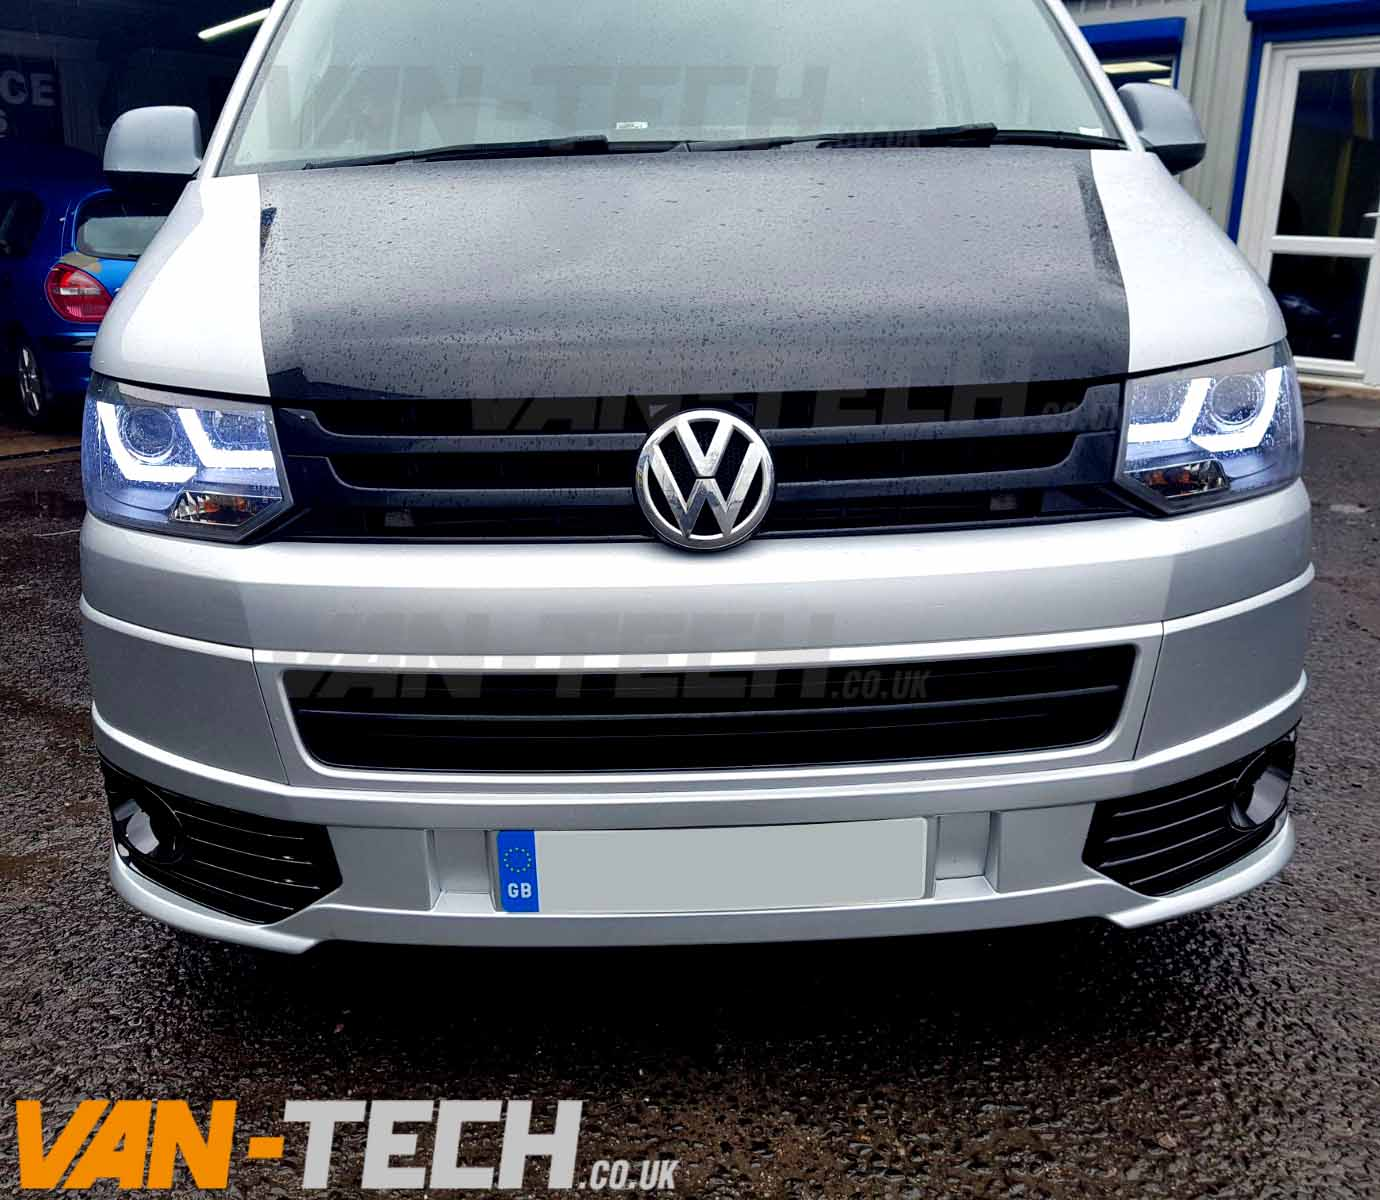 Vw T5 1 Fitted With Lower Sportline Bumper And Light Bar